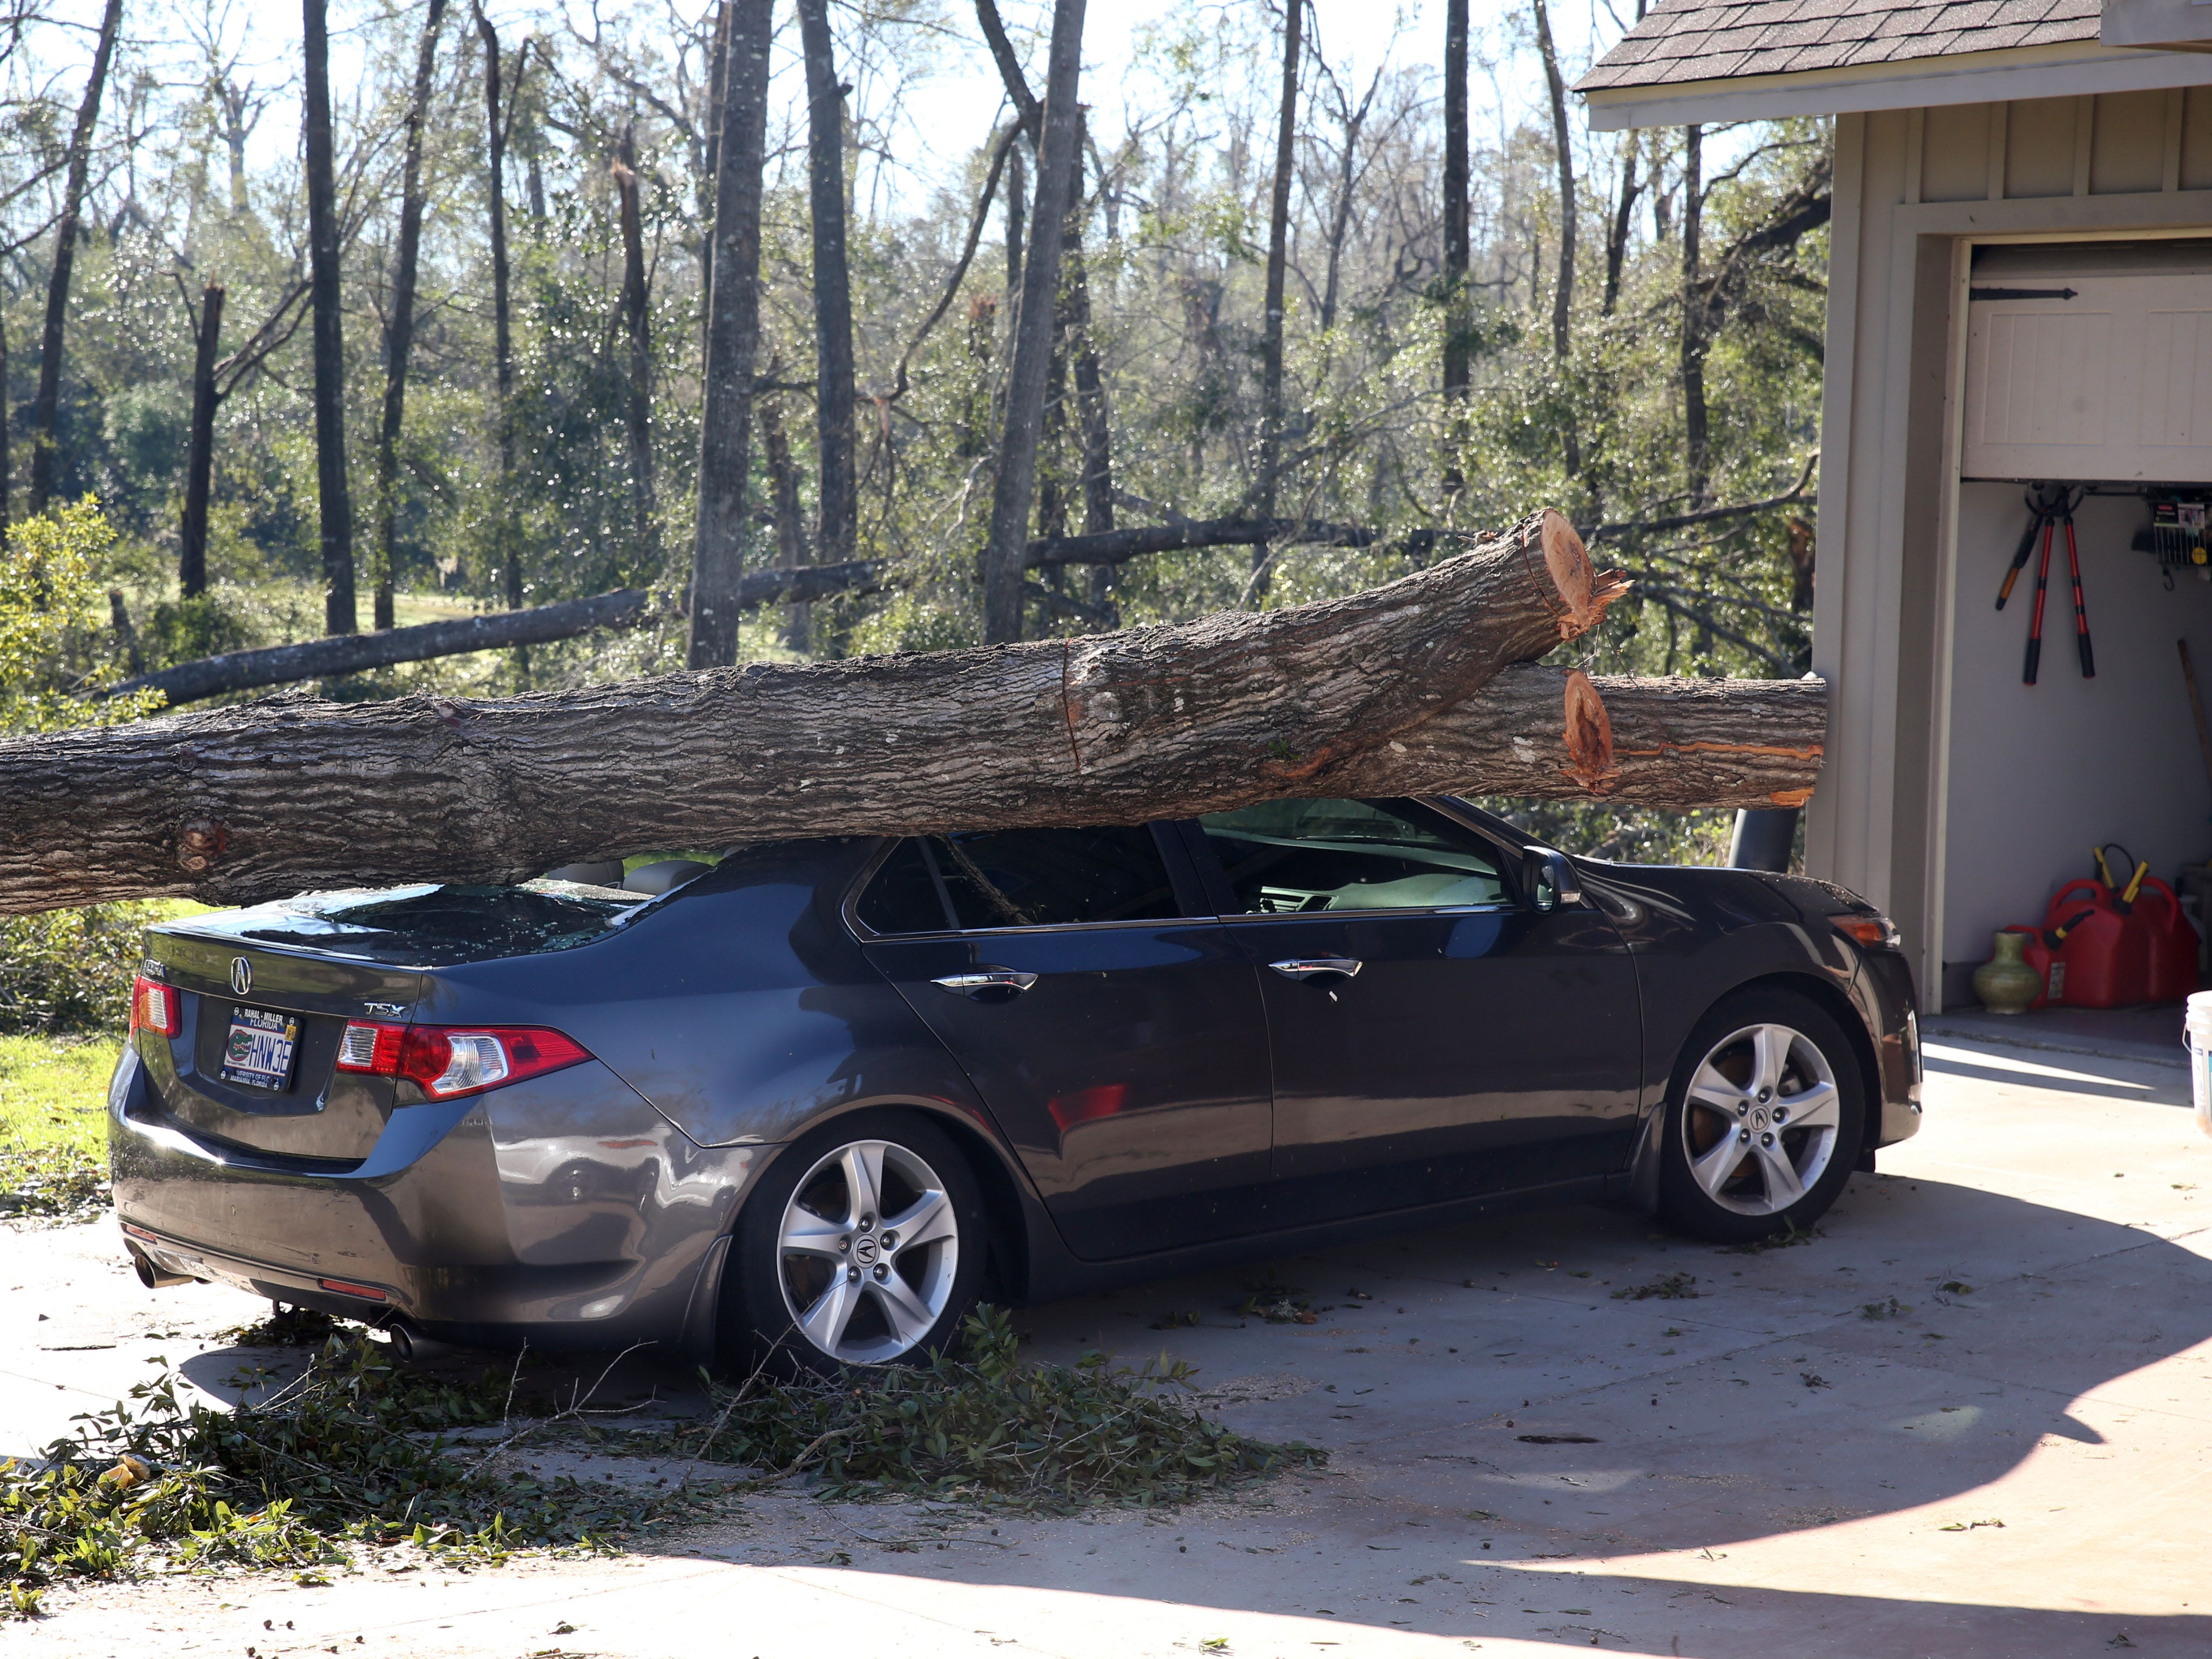 A car is left crushed under the weight of an oak tree in Marianna, Fla. on Friday, Oct. 12, 2018, after Hurricane Michael rips through the panhandle.